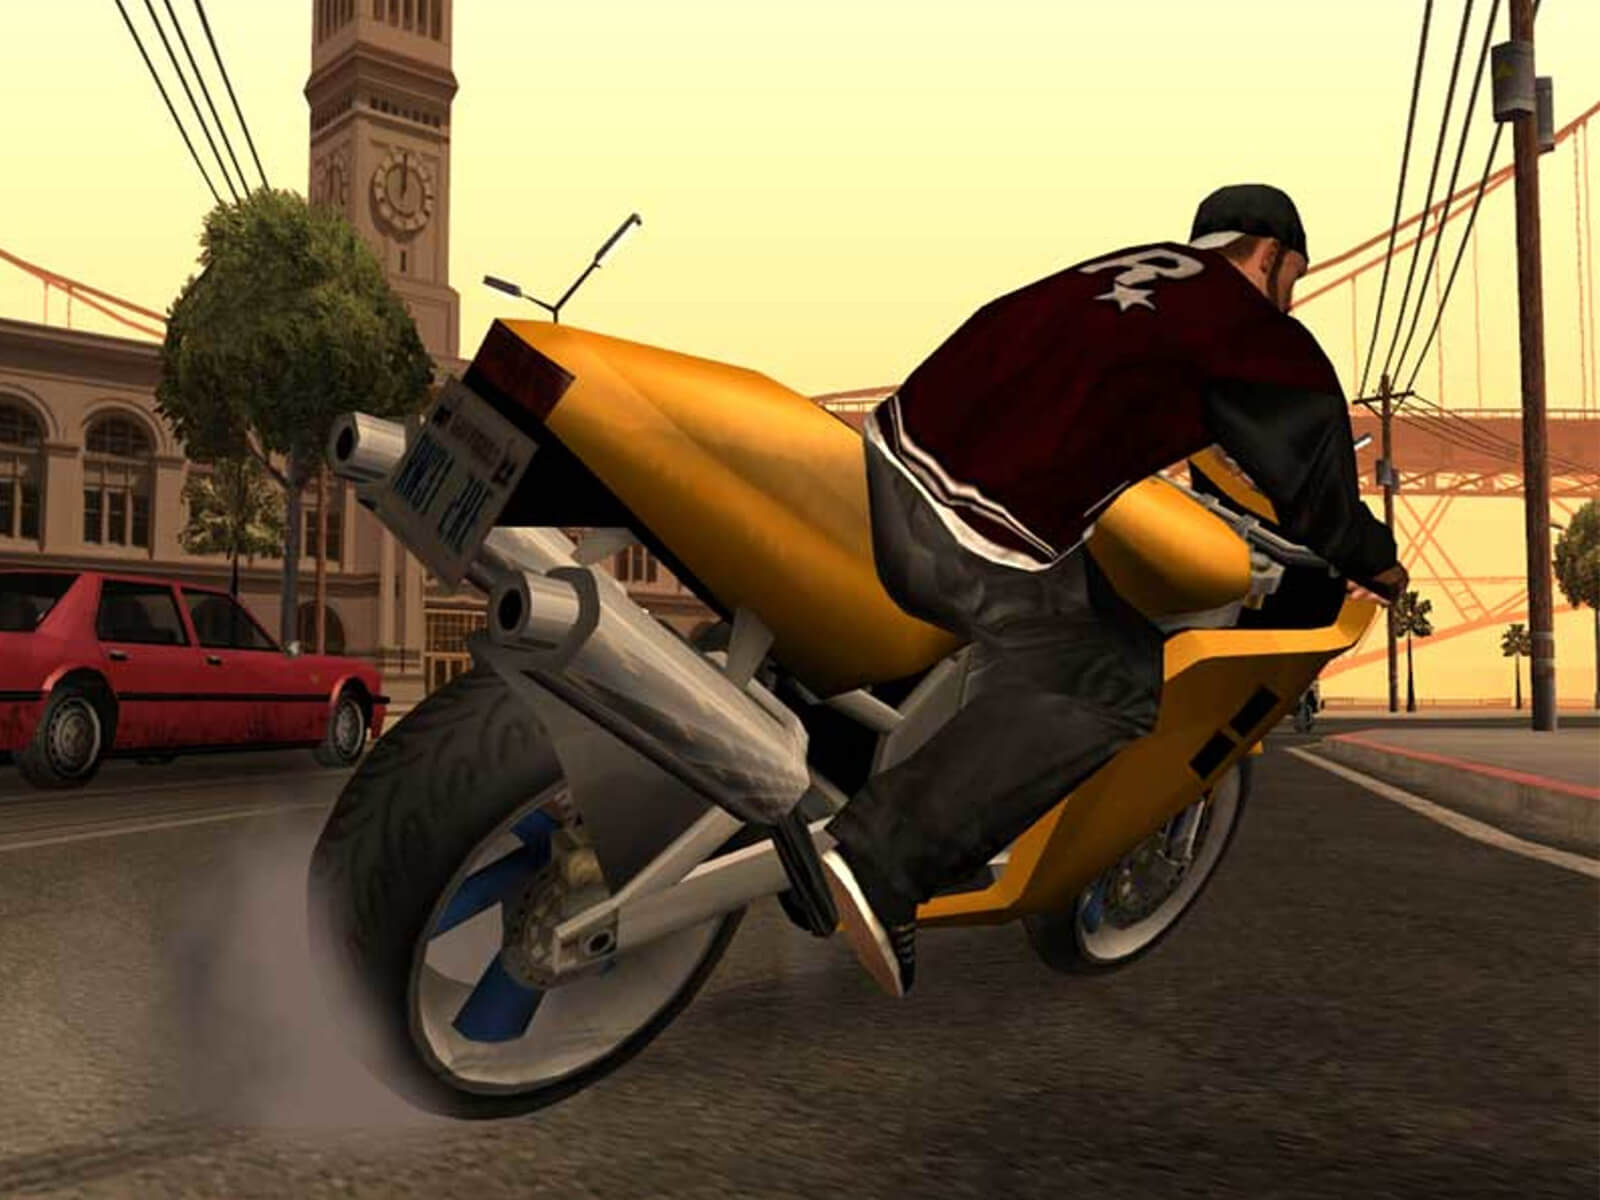 A screenshot from Grand Theft Auto: San Andreas of a man in a jacket with the Rockstar logo on it riding a gold motorcycle.